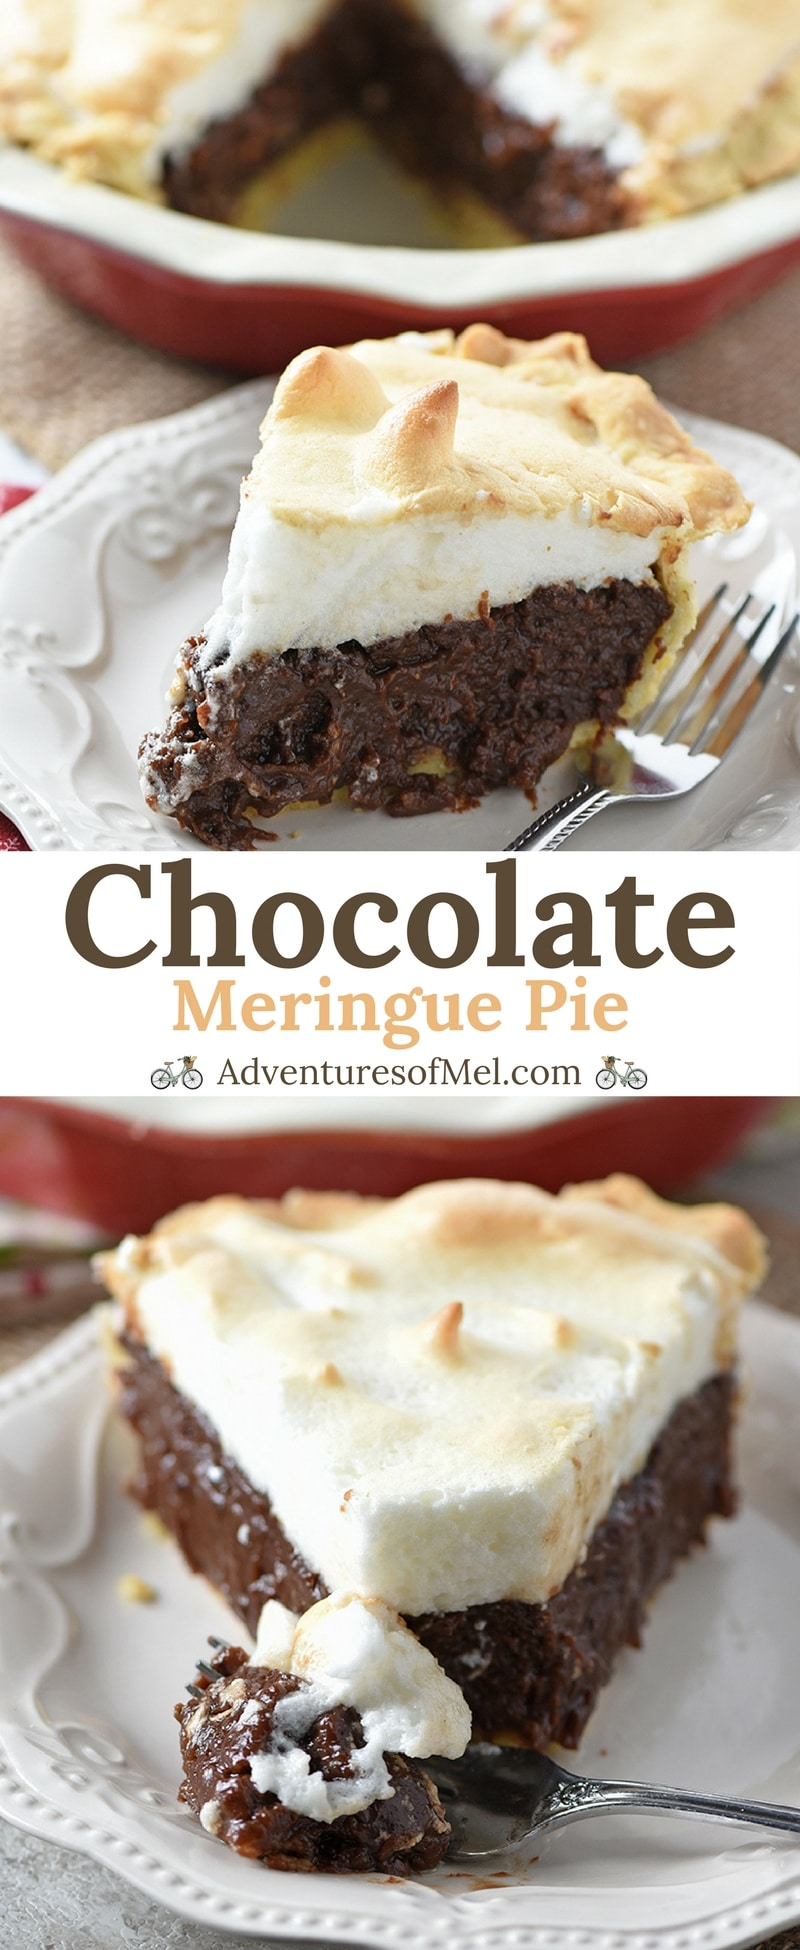 Chocolate Meringue Pie with a rich, creamy filling and fluffy homemade meringue. Delicious dessert recipe perfect for your inner chocolate lover!